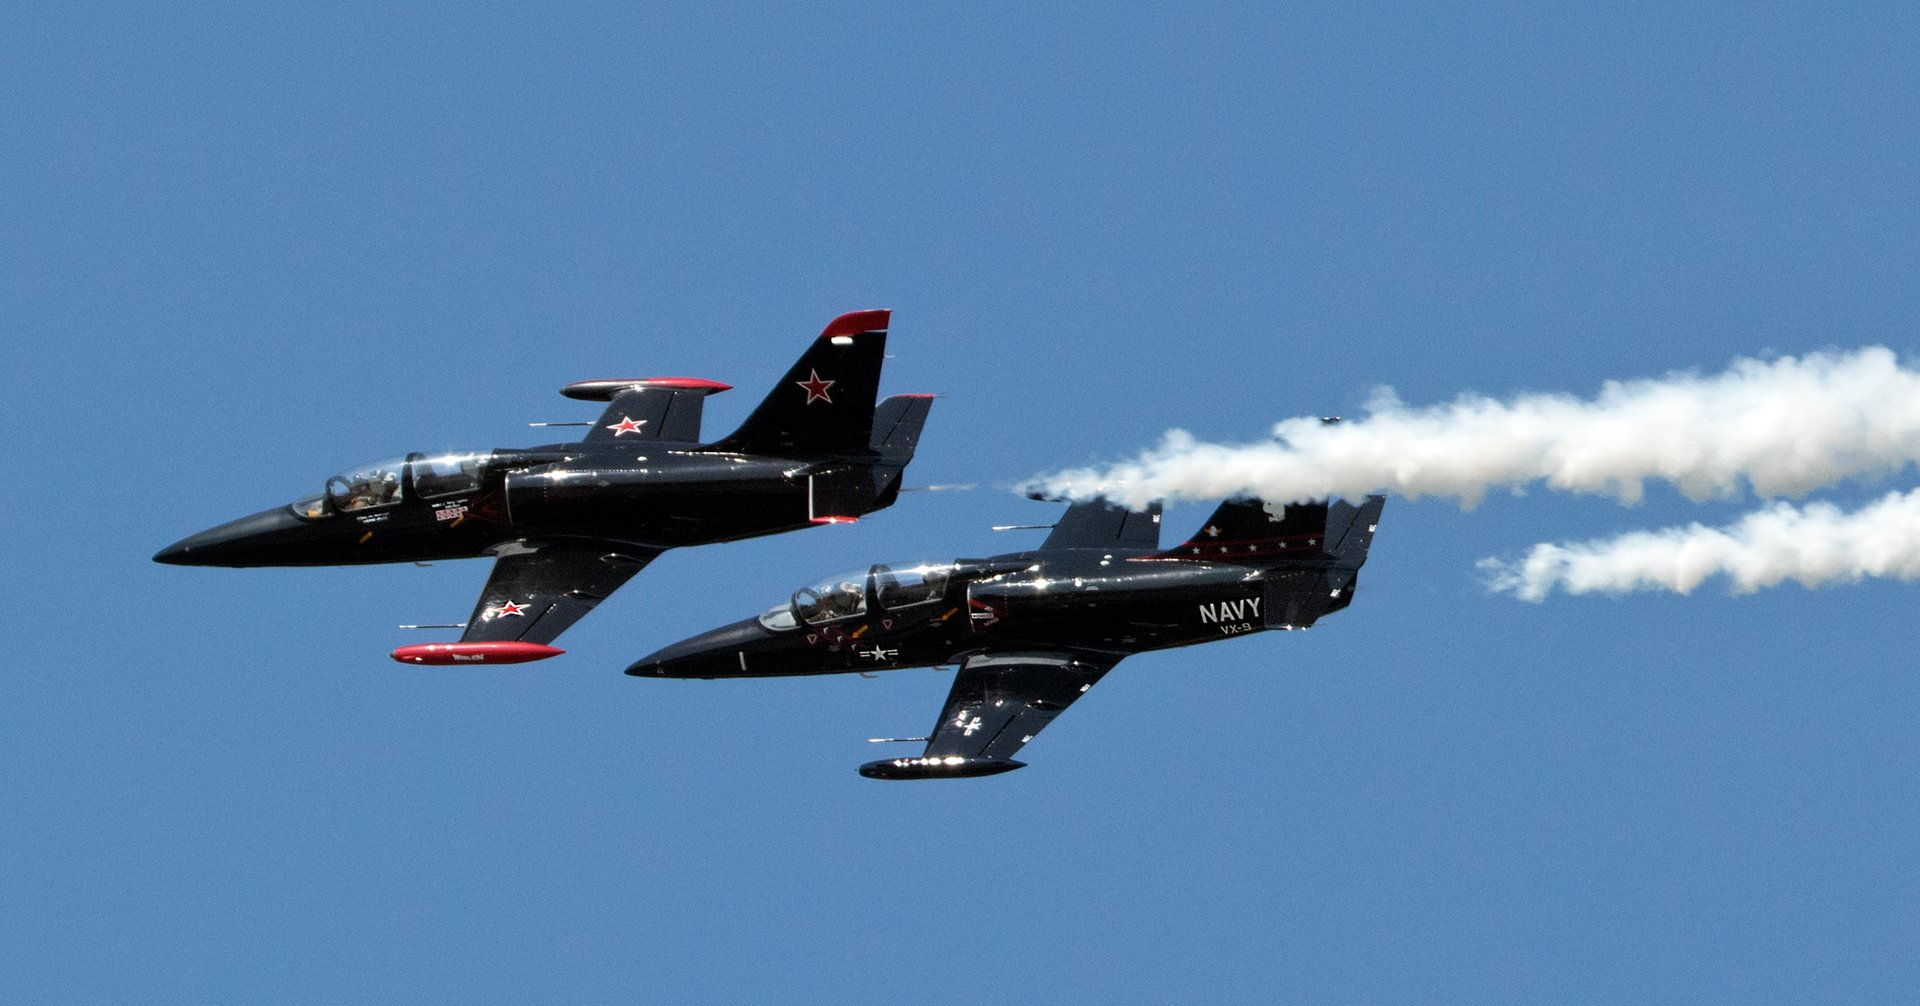 NAS Oceana Air Show in Virginia - Best Season 2019